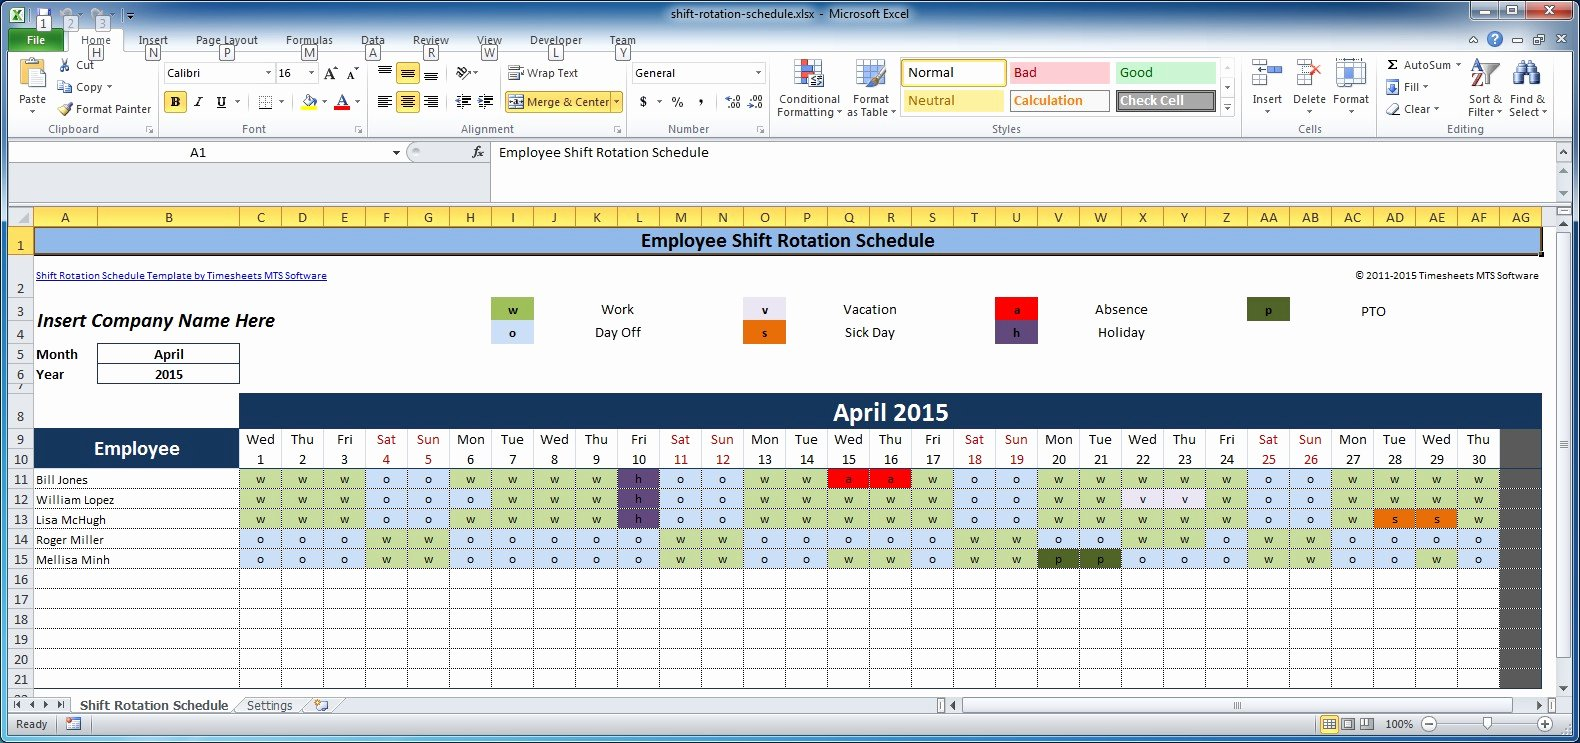 Excel Employee Shift Schedule Template Unique Free Employee and Shift Schedule Templates